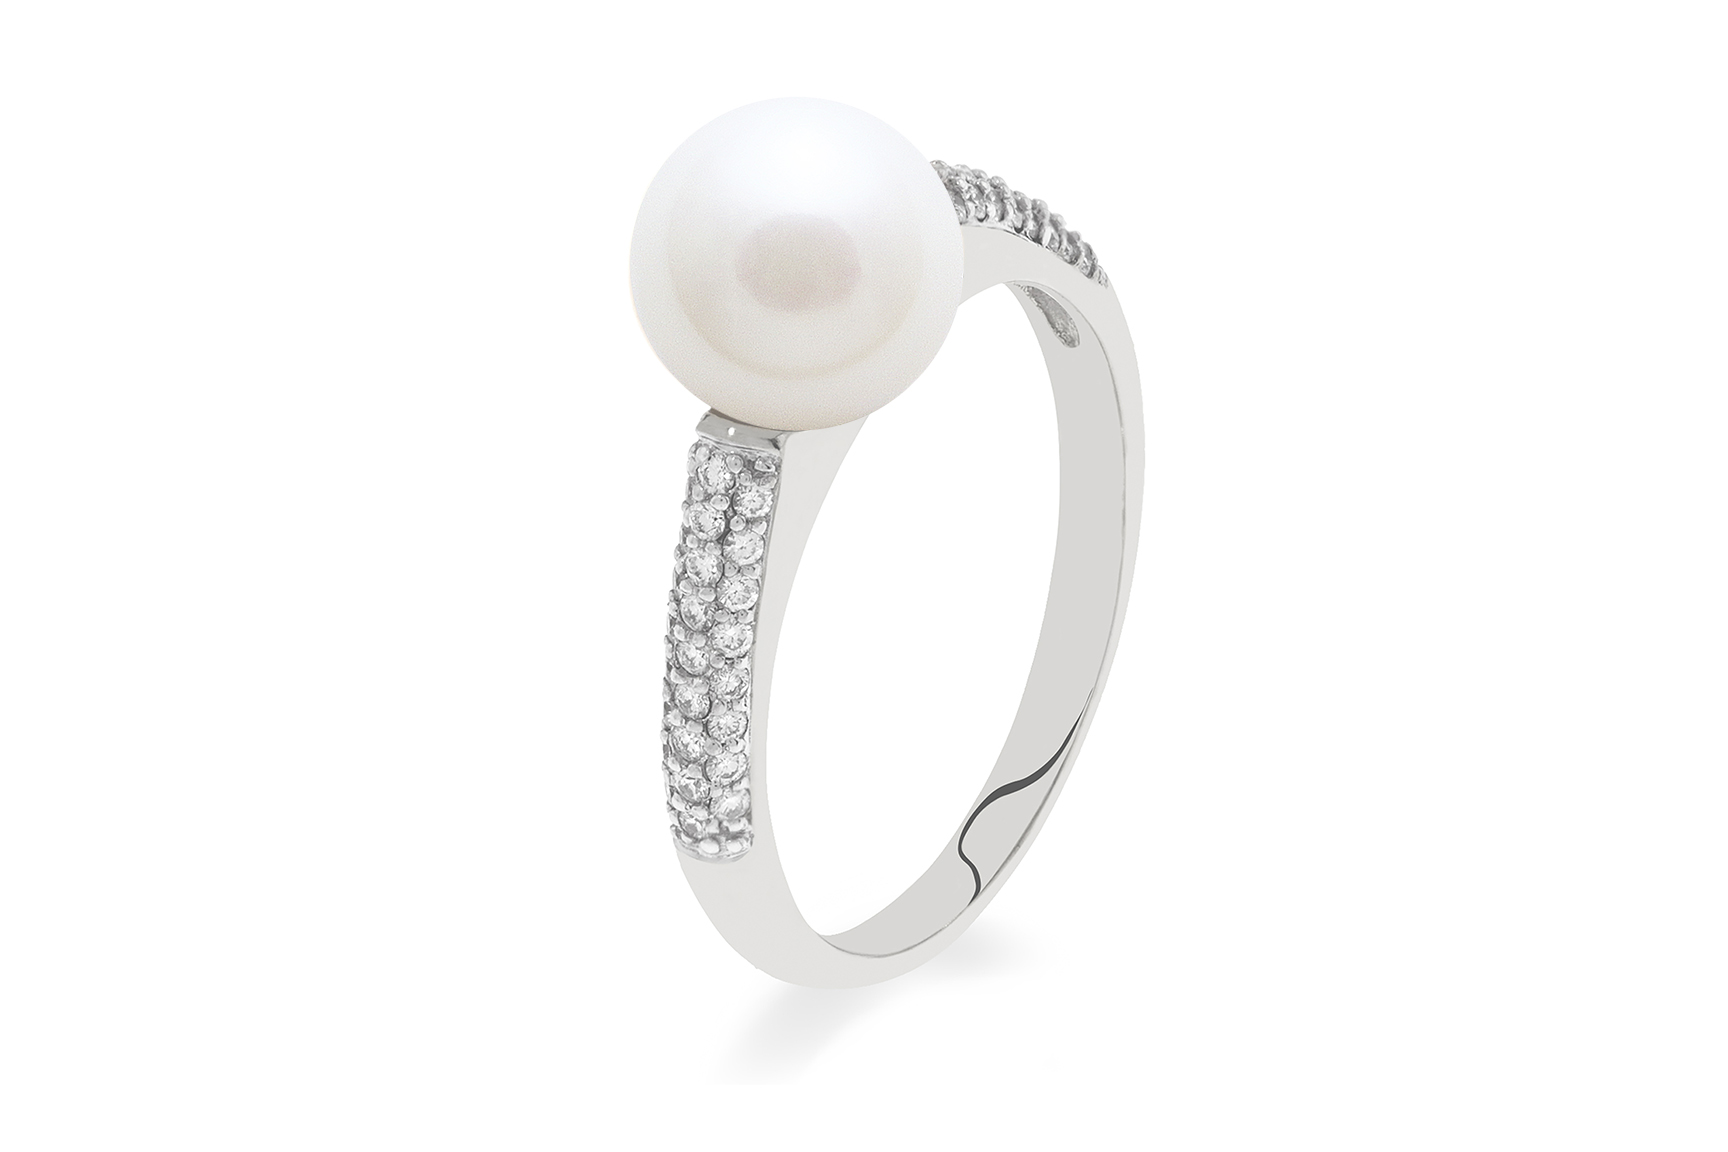 18ct white gold diamond set ring with akoya pearl